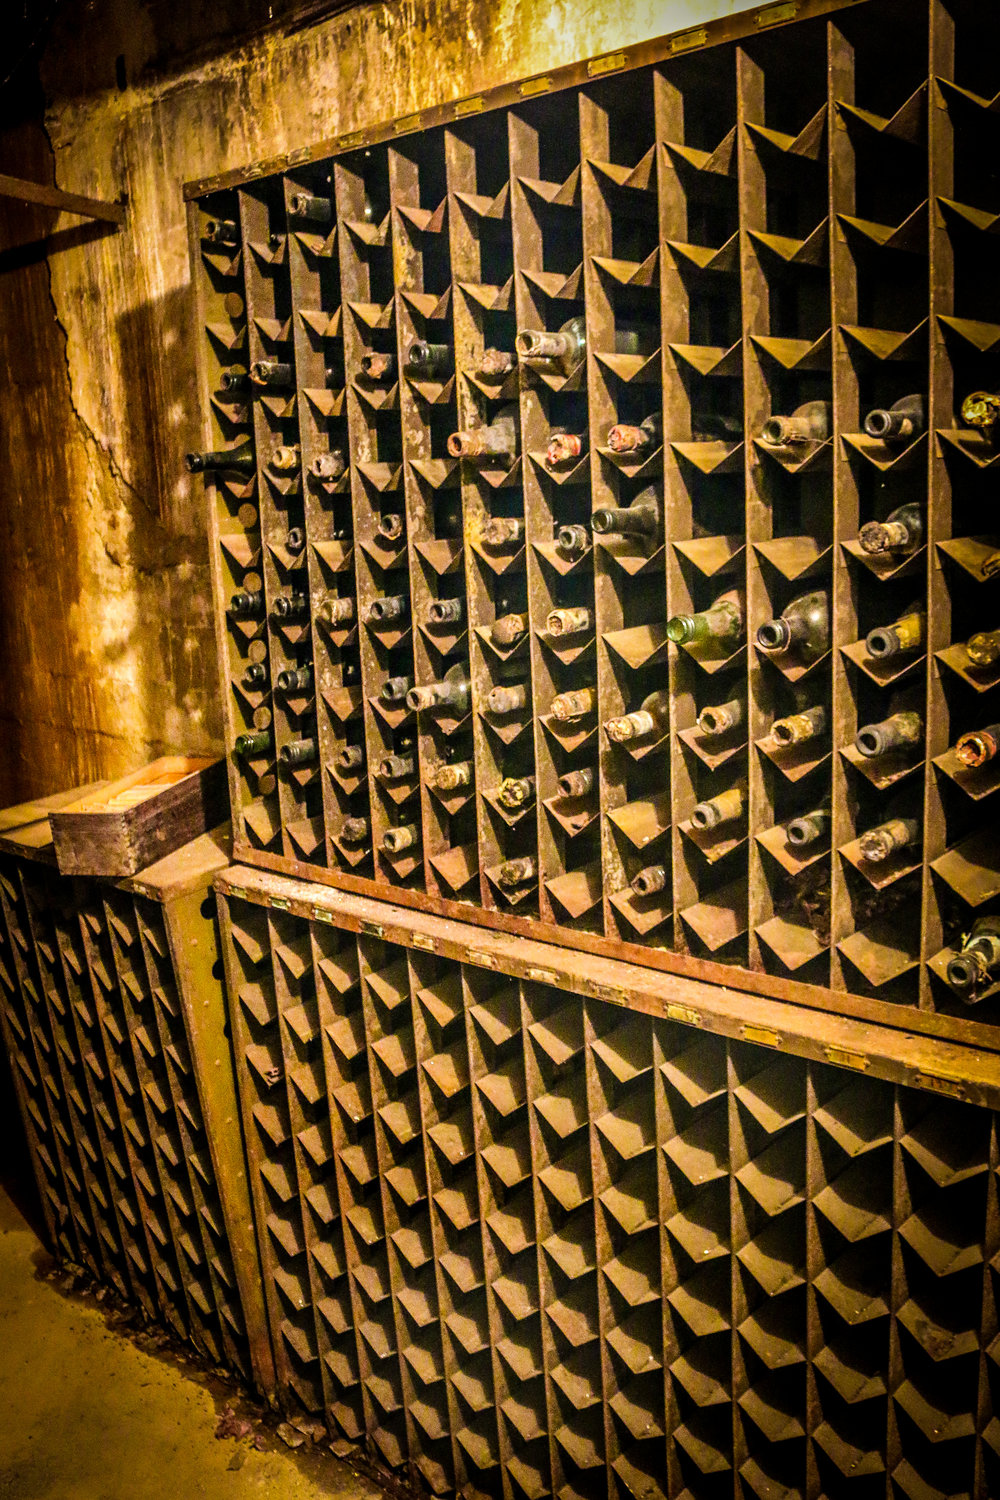 One Wall of the Wine Cellar